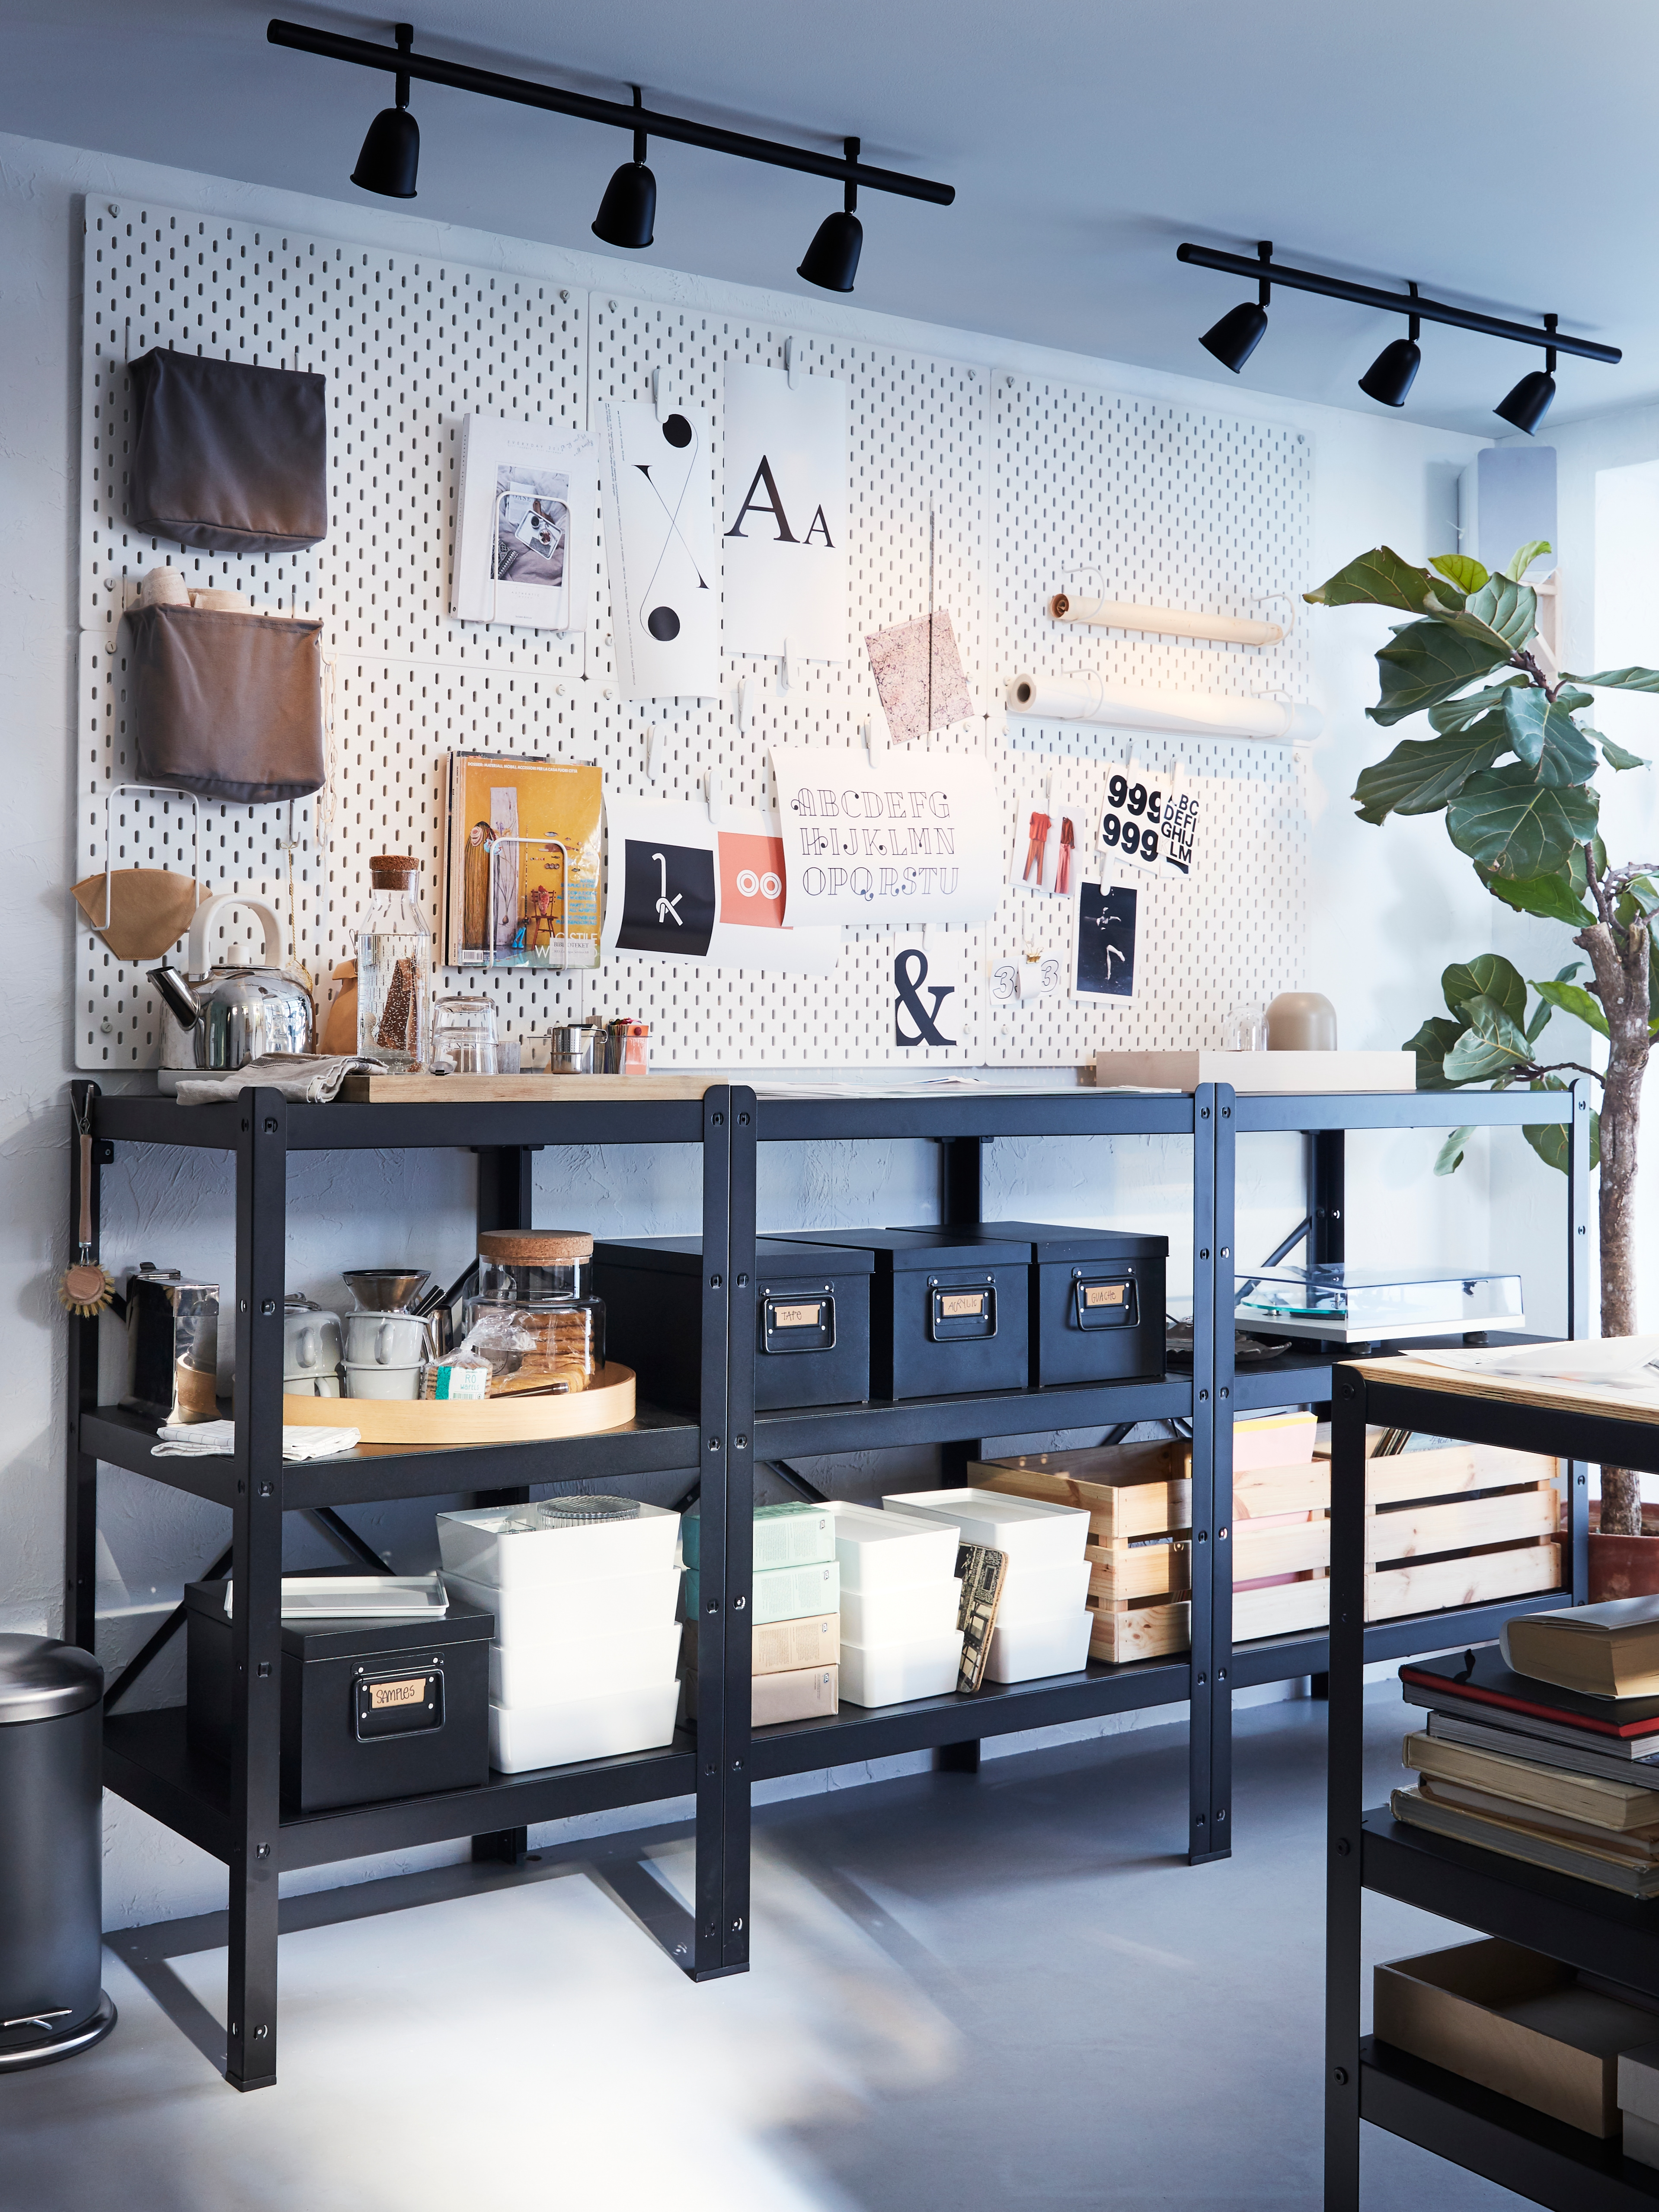 A room with a BROR shelving unit in black, holding boxes and various items, in front of a wall with a pegboard with notes.